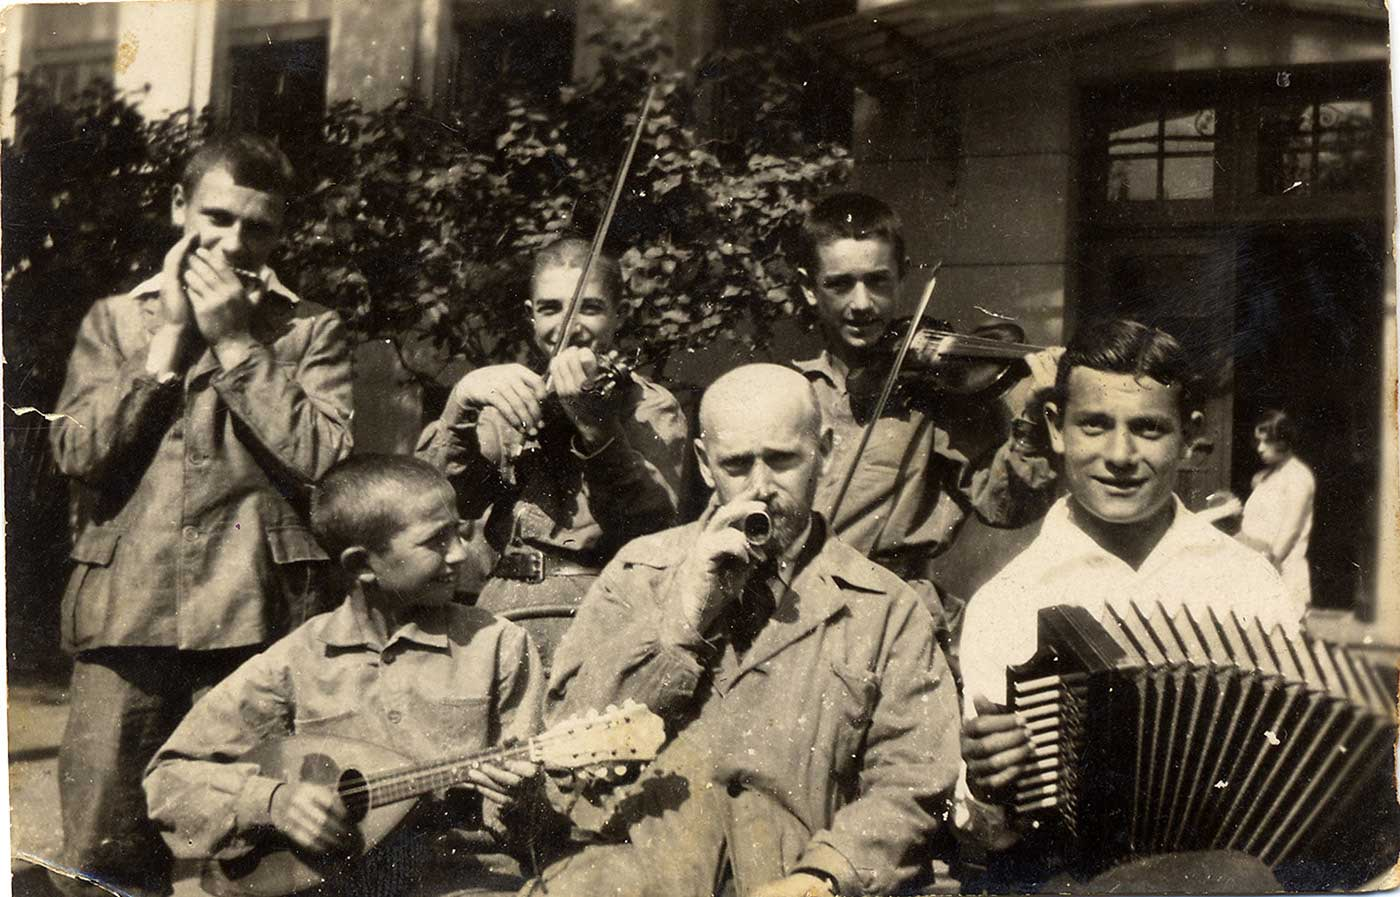 A brief introduction to the life of Dr. Janusz Korczak